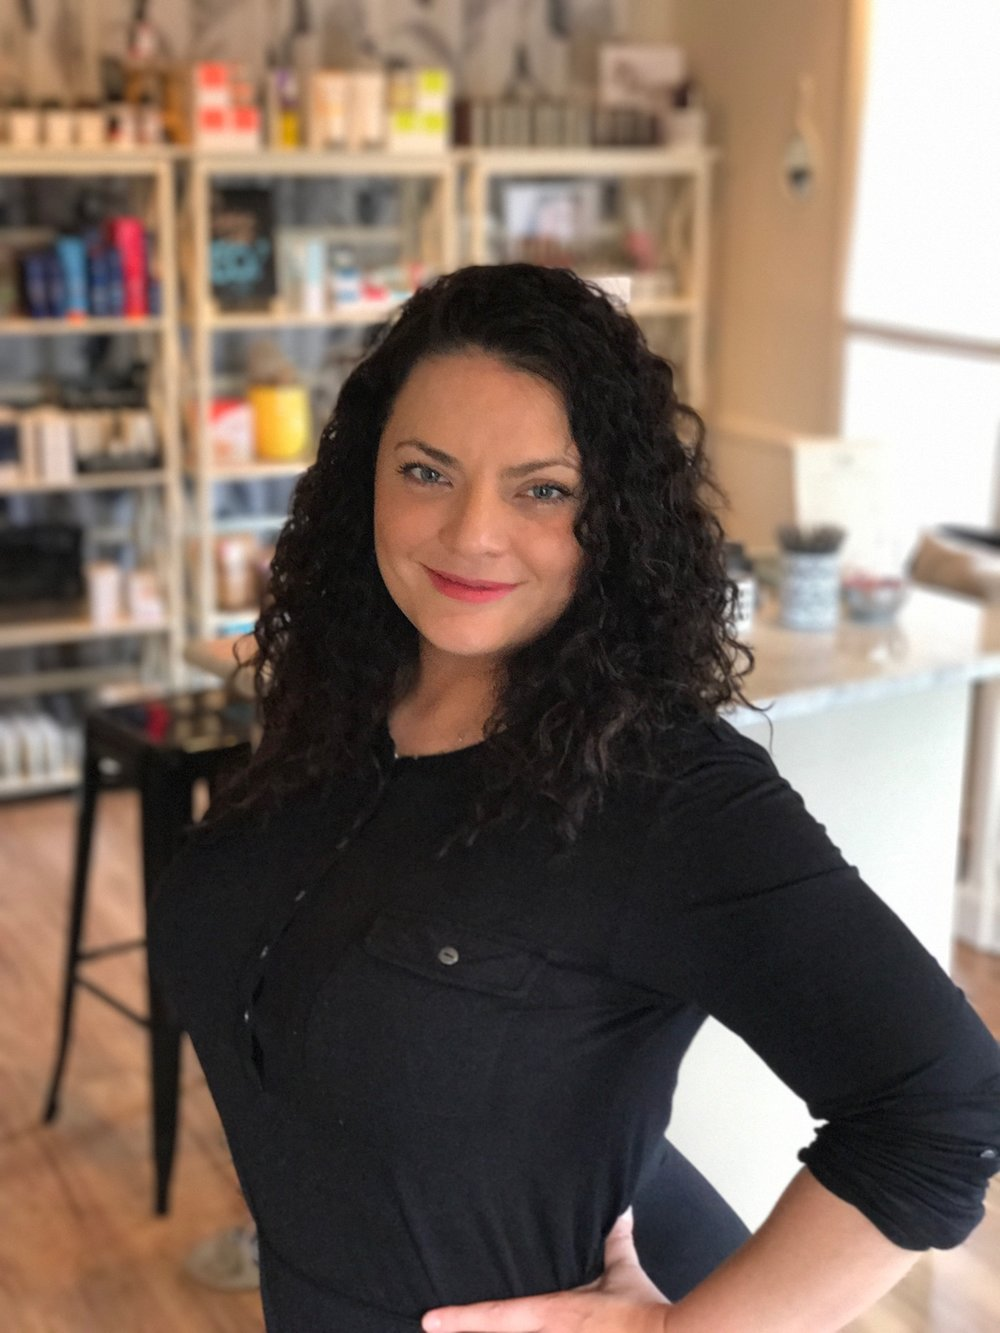 "Berenice Liz Garcia LMT#1809     A true ""wander woman"", she's lived many places around the world   Taurus   Massage therapist + Ashiatsu artist + Aromatherapist   Favorite color - Aqua blue   Loves all things chocolate + Laughs easily + Needs her spa days   Professional since 2000"